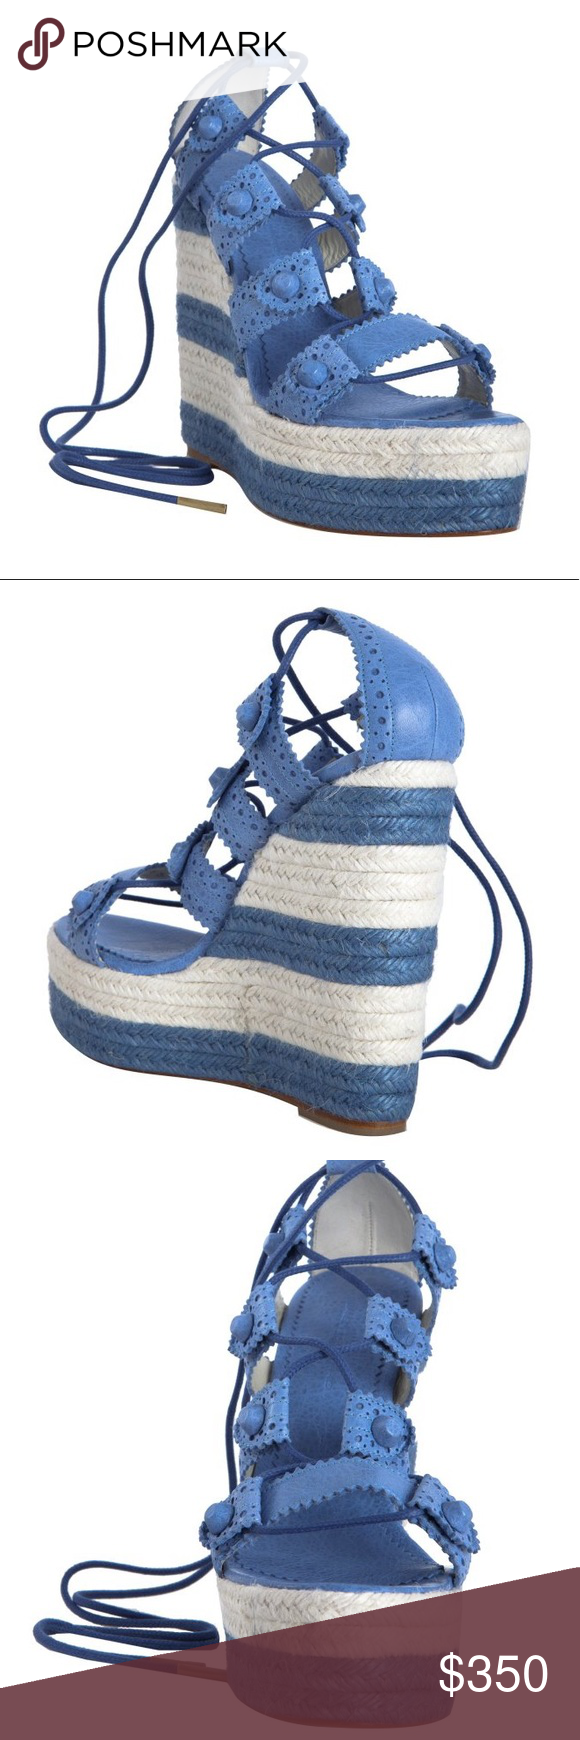 b51ac5be236 Balenciaga Cloud Leather Lace Up Espadrilles Wedge Size 39. Wear on  hardware and sole. Still in good condition. Comment for pictures.